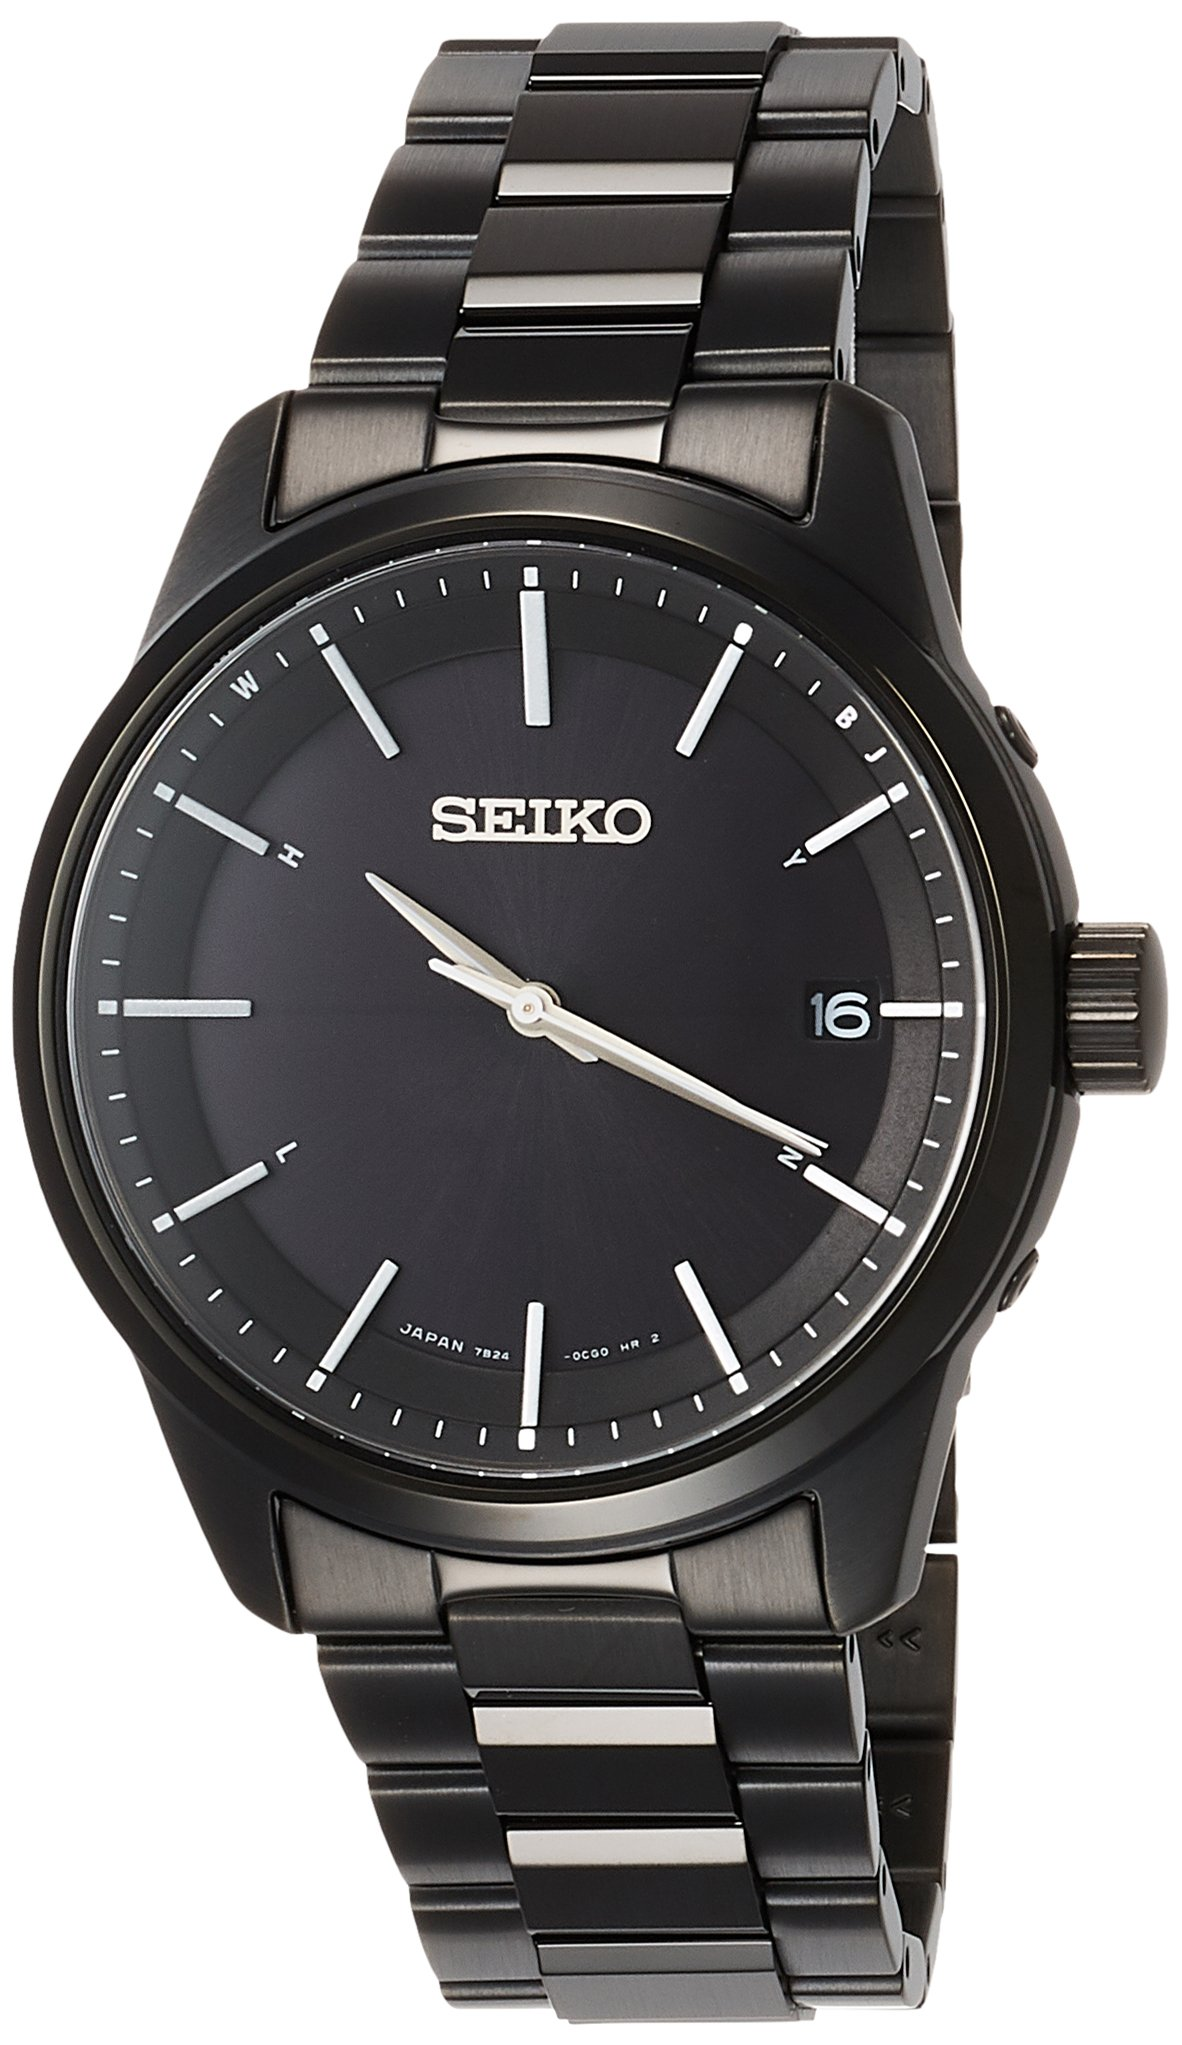 SEIKO SELECTION Watch Basic Solar Radio Stainless Steel Model SBTM257 Men's black